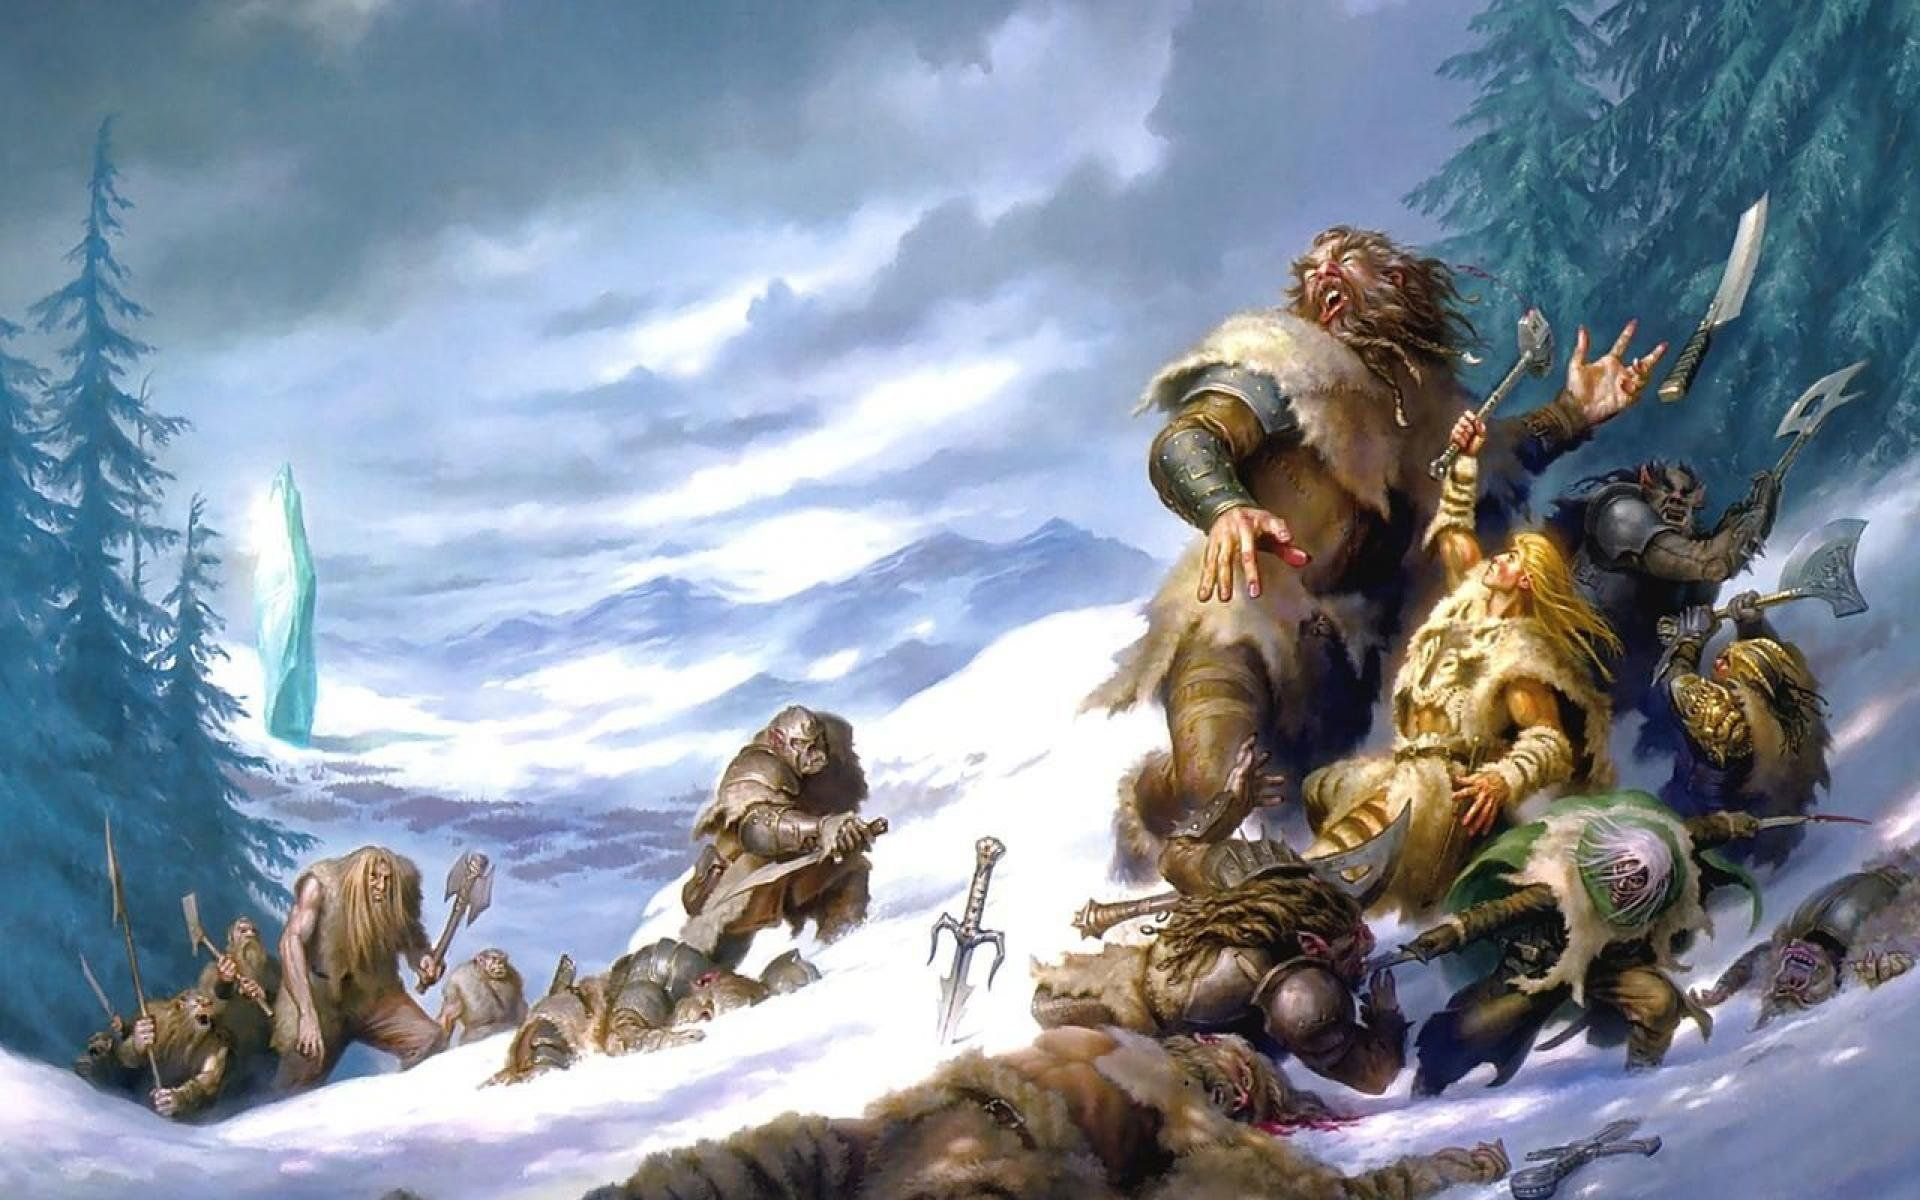 dungeons and dragons hd wallpapers | hd wallpapers 365 | d&d